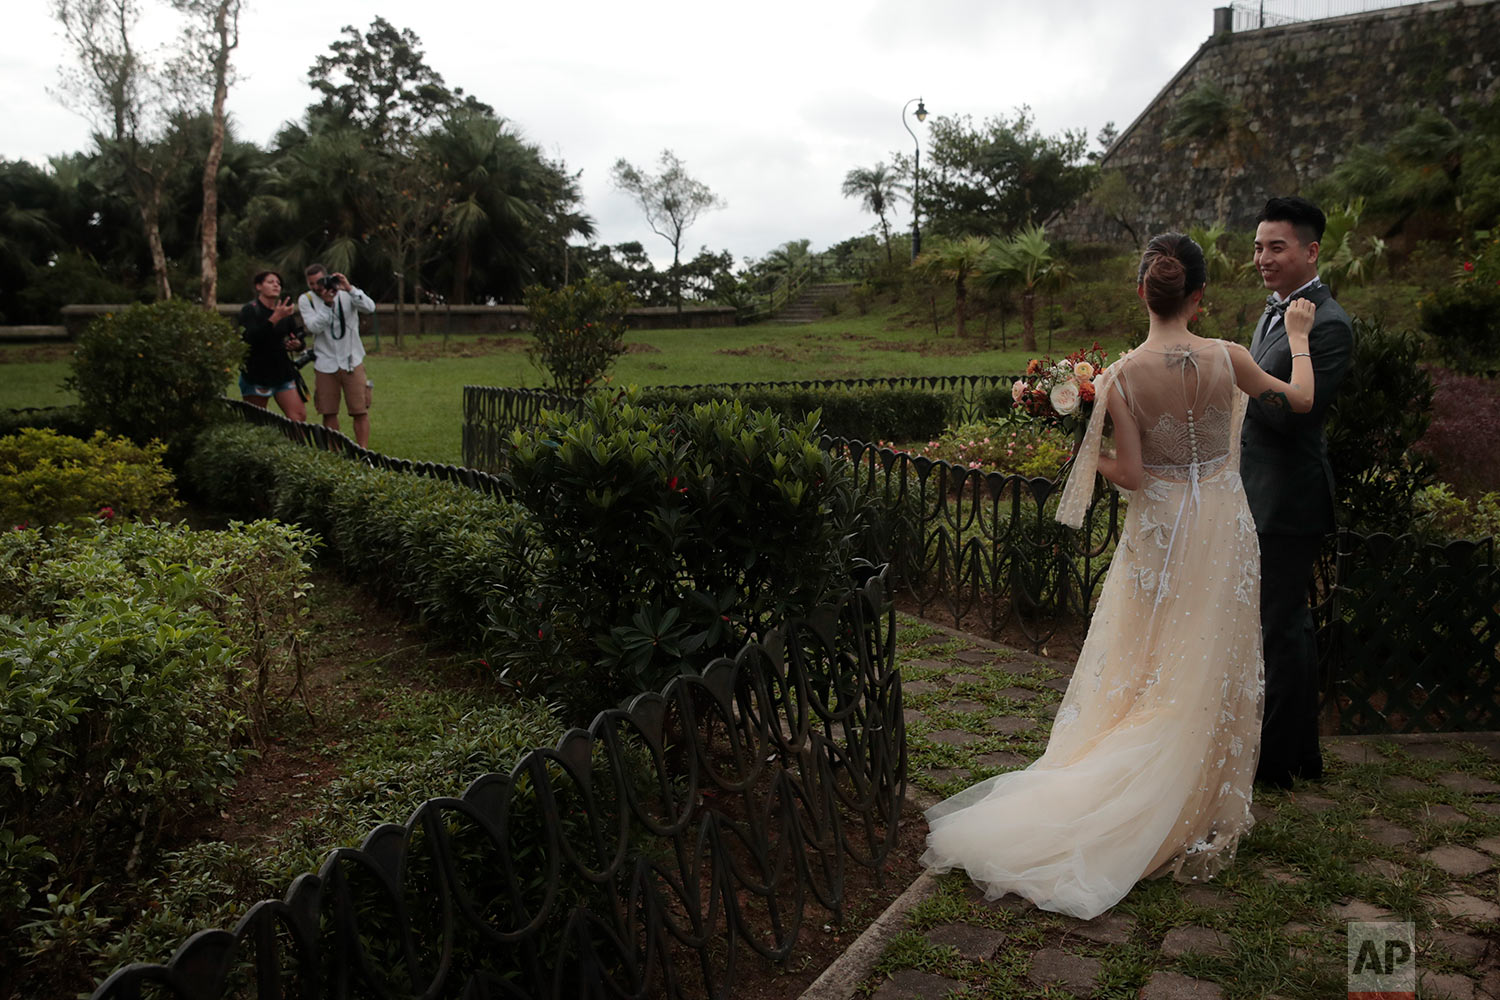 A bride fixes her groom's bow tie during a wedding photoshoot on the top of the Victoria Peak in Hong Kong, Sept. 1, 2019. (AP Photo/Jae C. Hong)